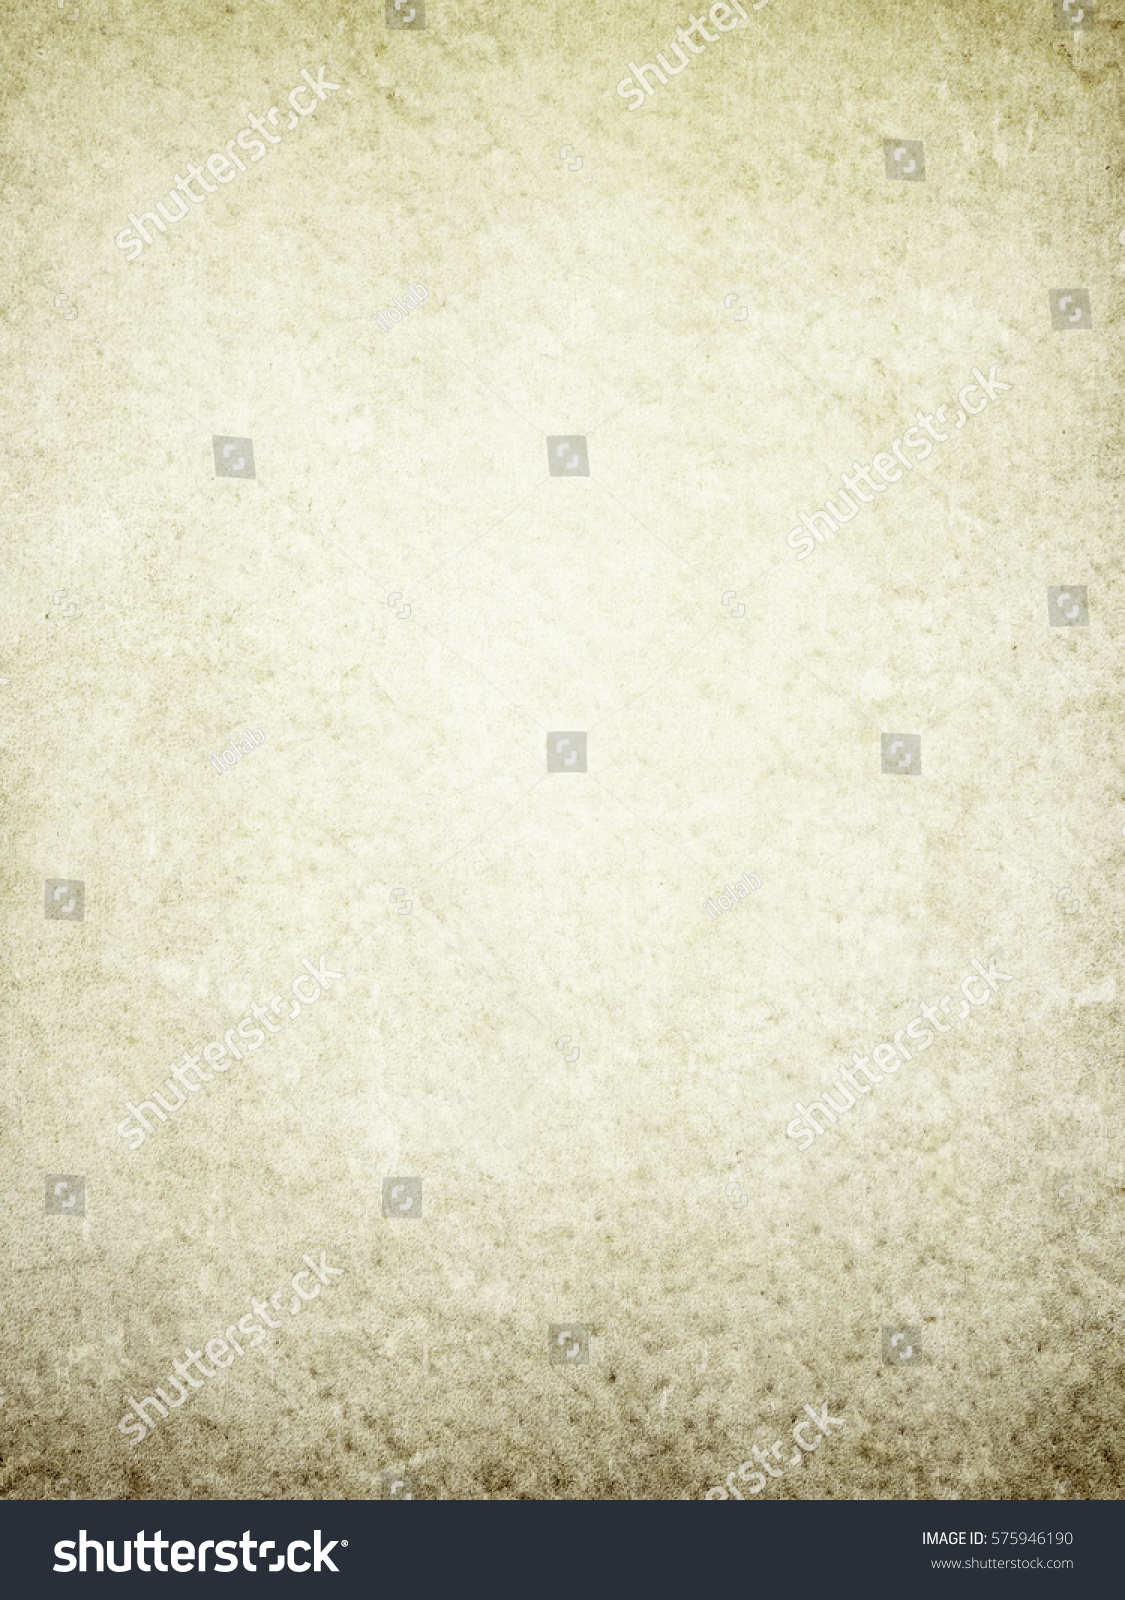 Creative material background grunge wallpaper space stock for Material design space